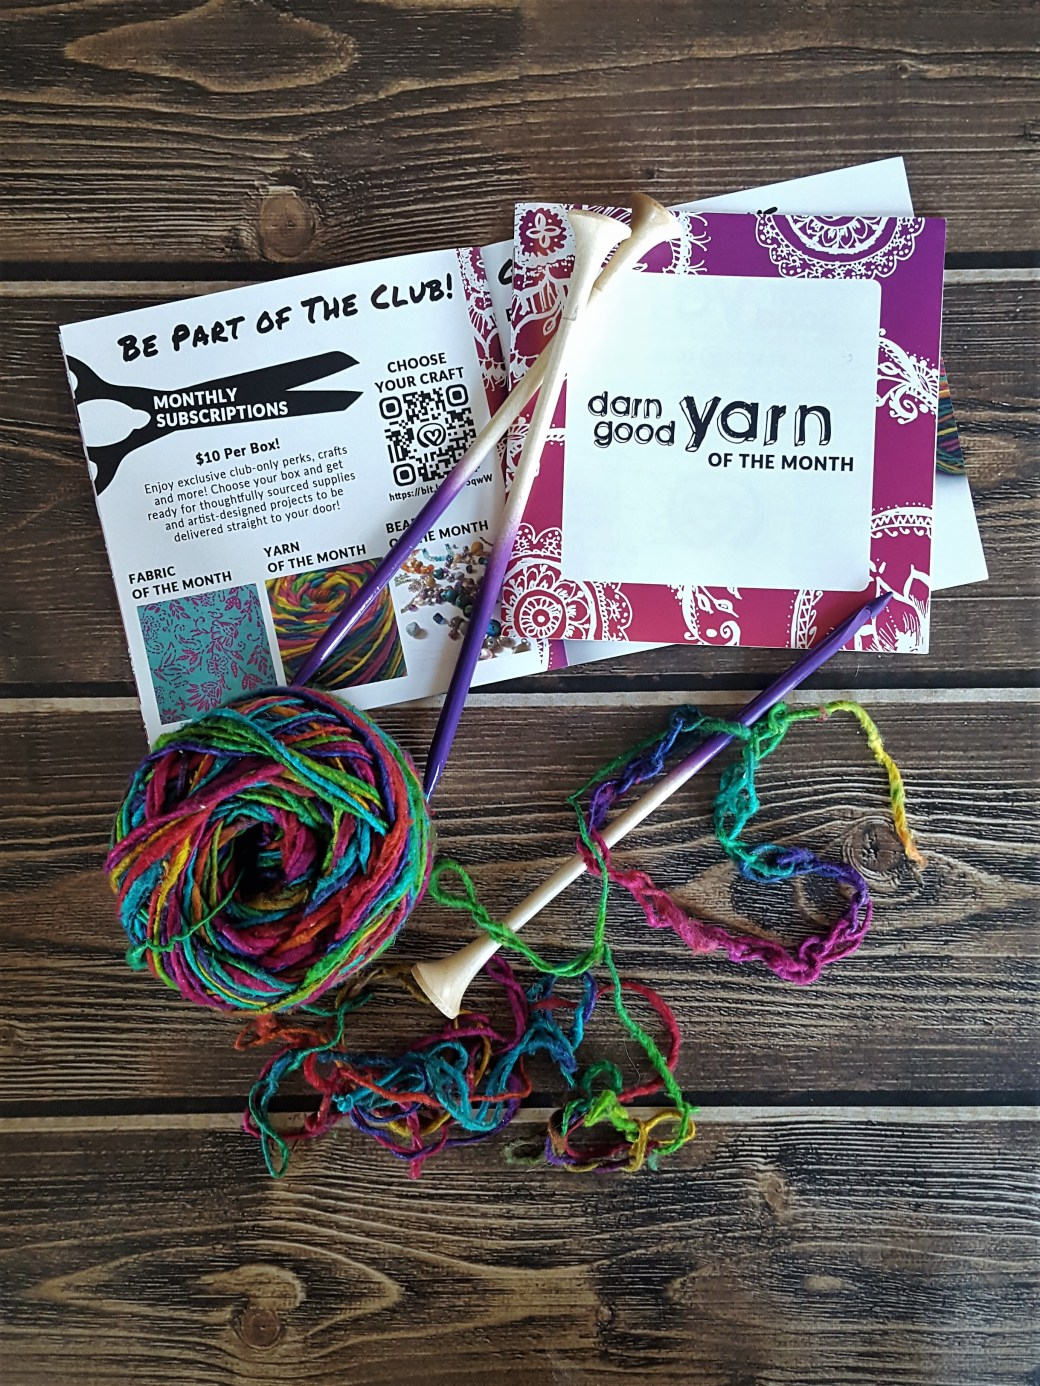 For only $10 a month, the Darn Good Yarn subscription box is not only an ethical choice, but one of the least expensive monthly craft kits on the market. #subscriptionbox #unboxing #knit #crochet #fiberart